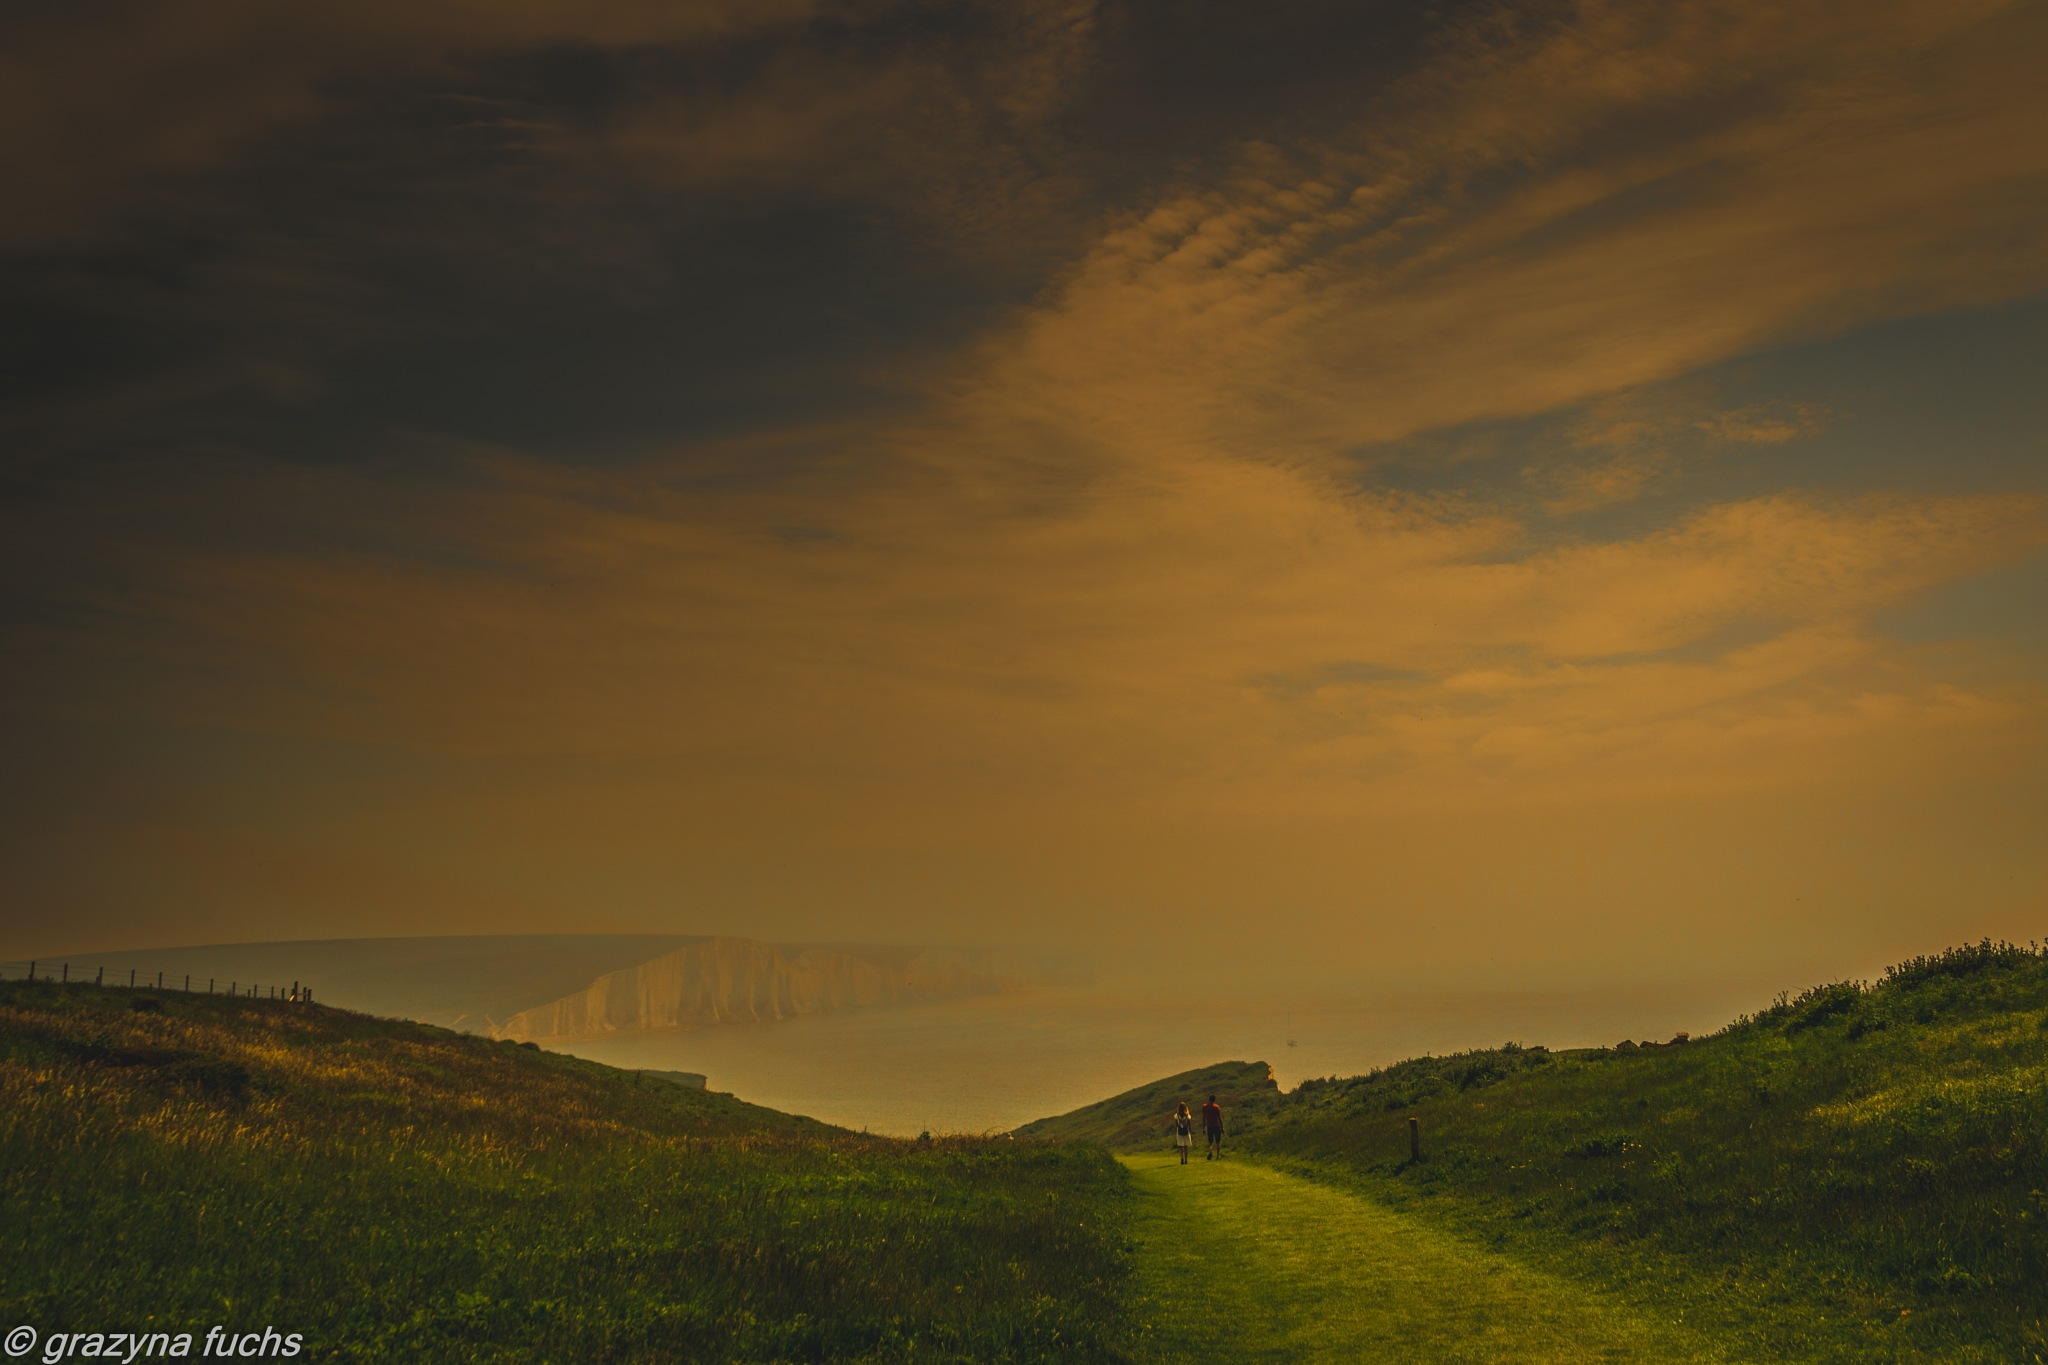 walking to Seven Sisters Cliffs by Grażyna Fuchs